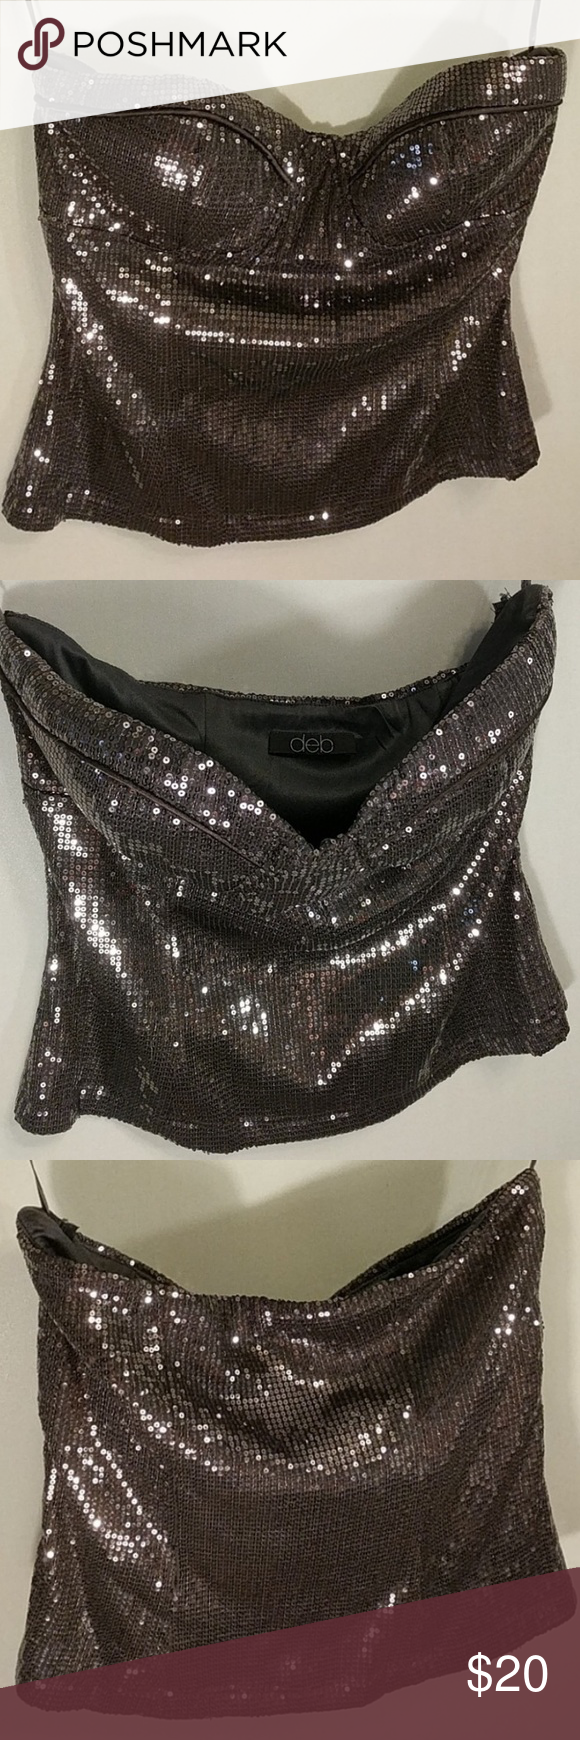 000fa7a4e3 Deb Strapless sequin Bling silver tube top M Deb Strapless sequin Bling silver  tube top. Gently used. Size medium. Deb Tops Crop Tops